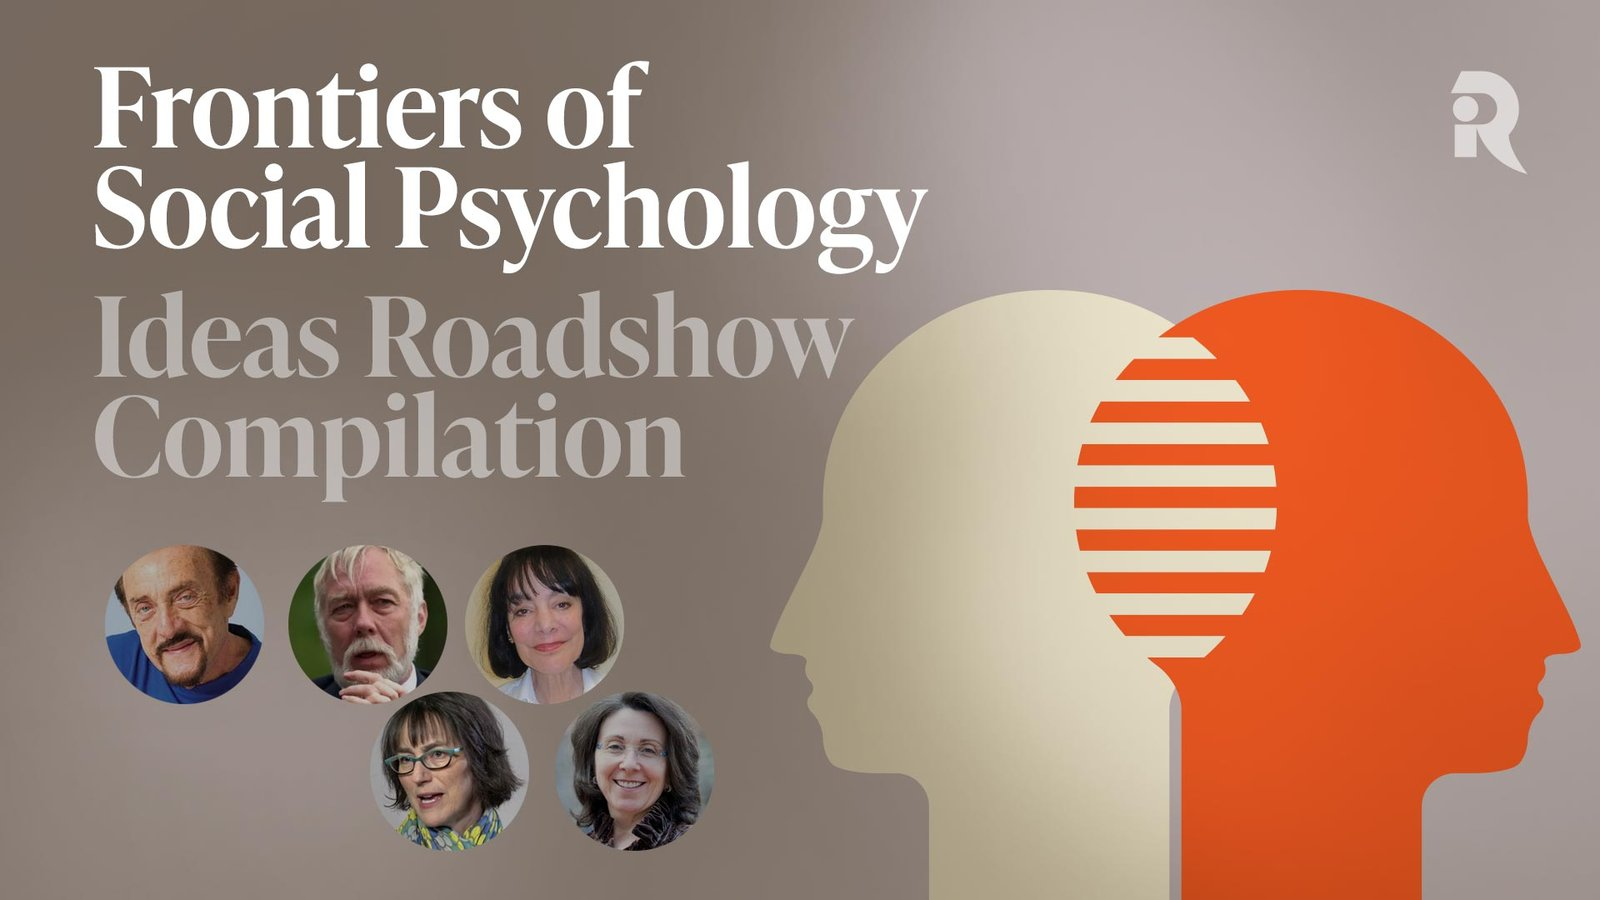 Frontiers of Social Psychology